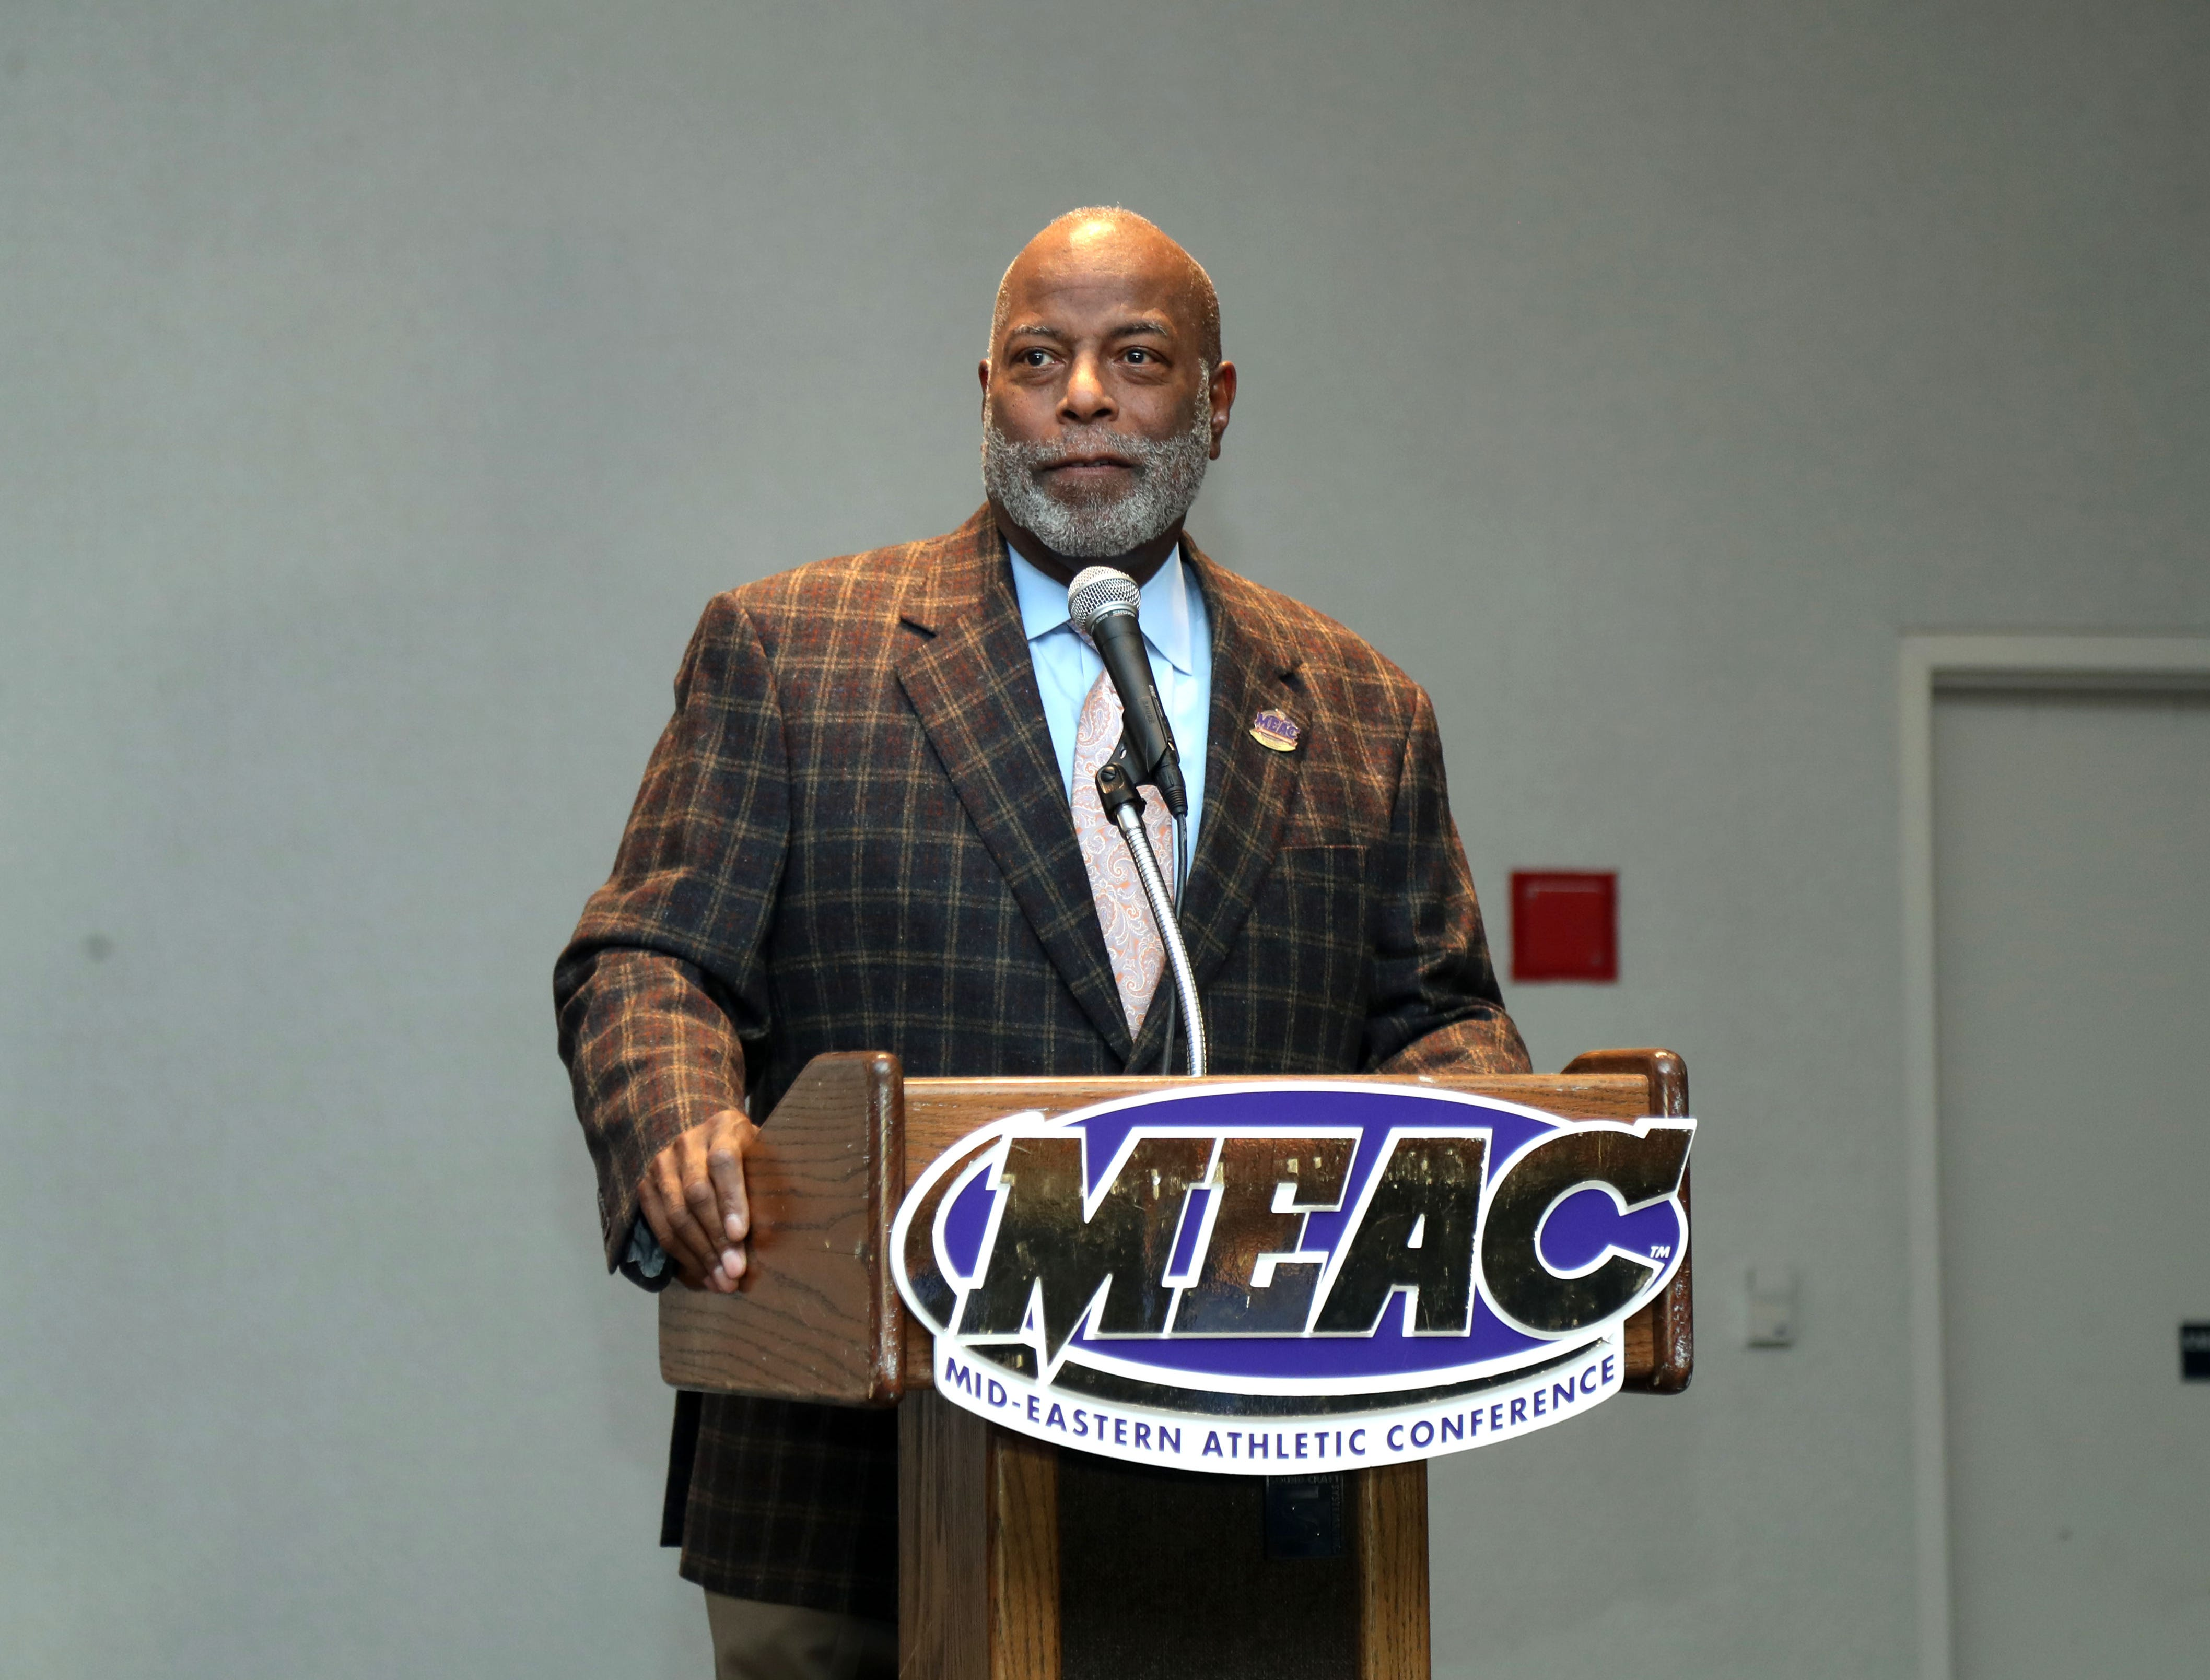 MEAC commissioner Dr. Dennis E. Thomas addresses the auidence during the Hall of Fame enshrinement on March 14, 2019 at the Sheraton Norfolk Waterside Hotel in Norfolk, Virginia.